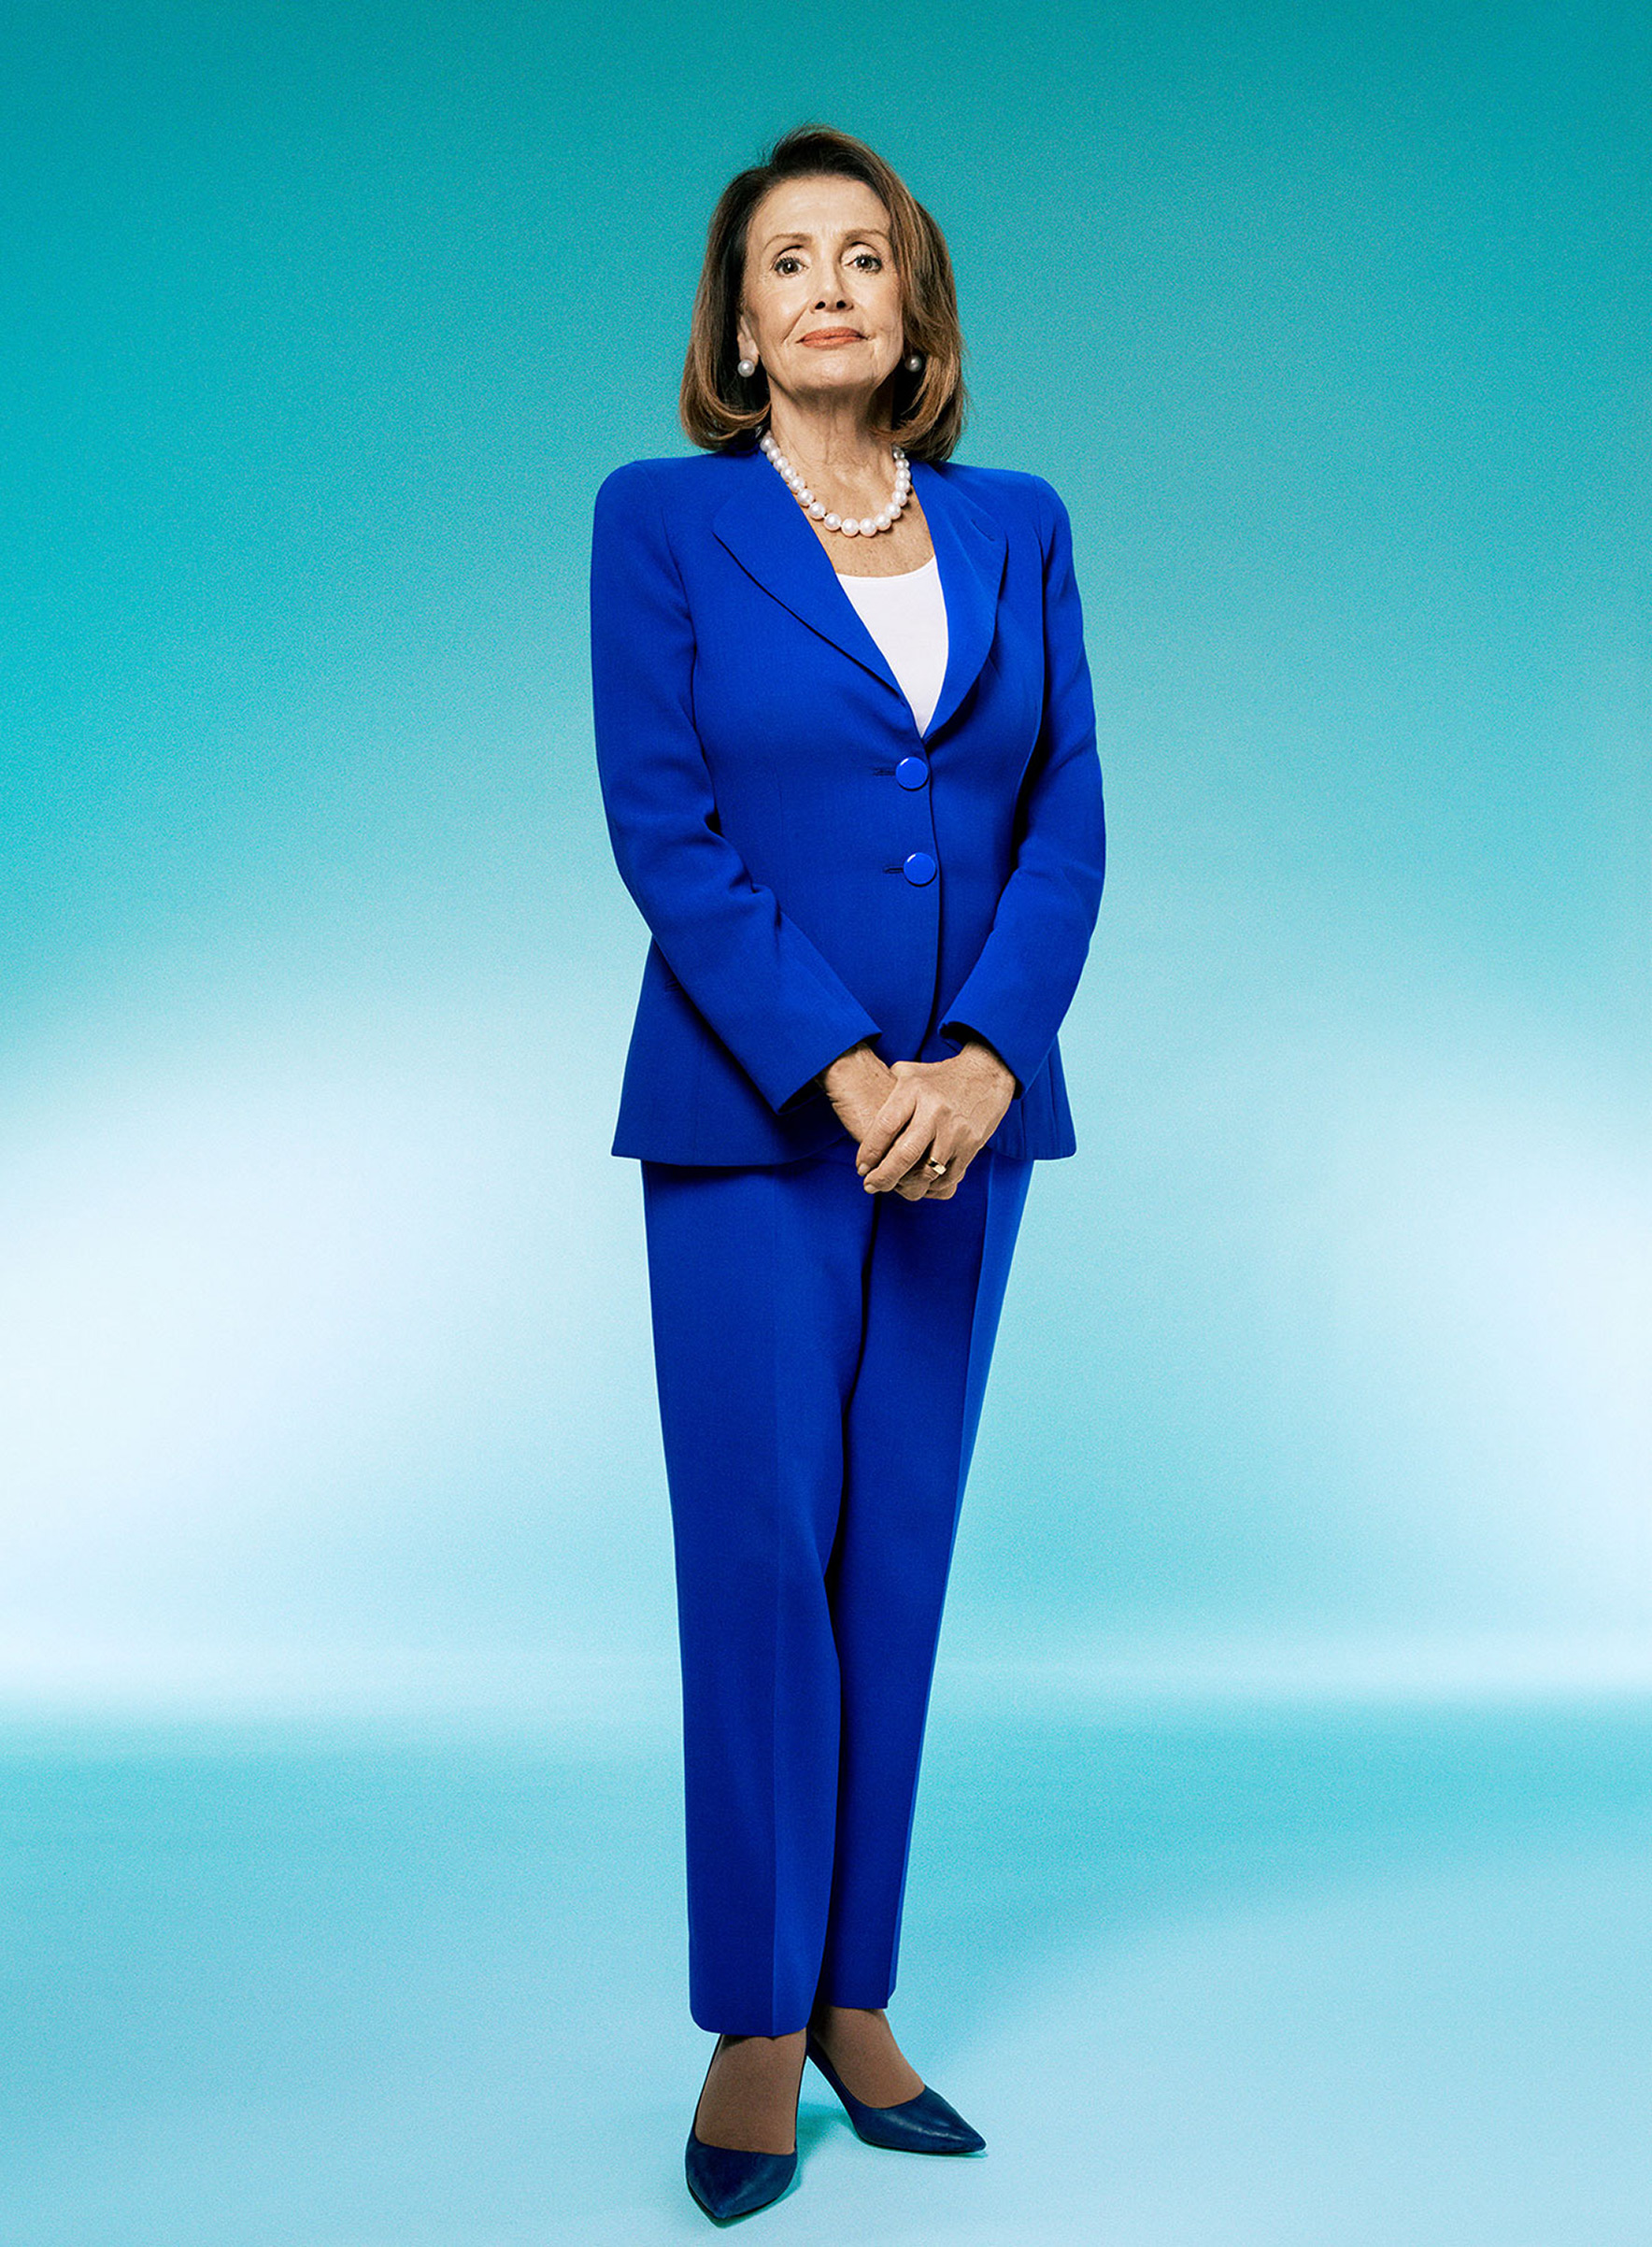 Nancy Pelosi.  TIME 100 Most Influential People,  April 29 issue.